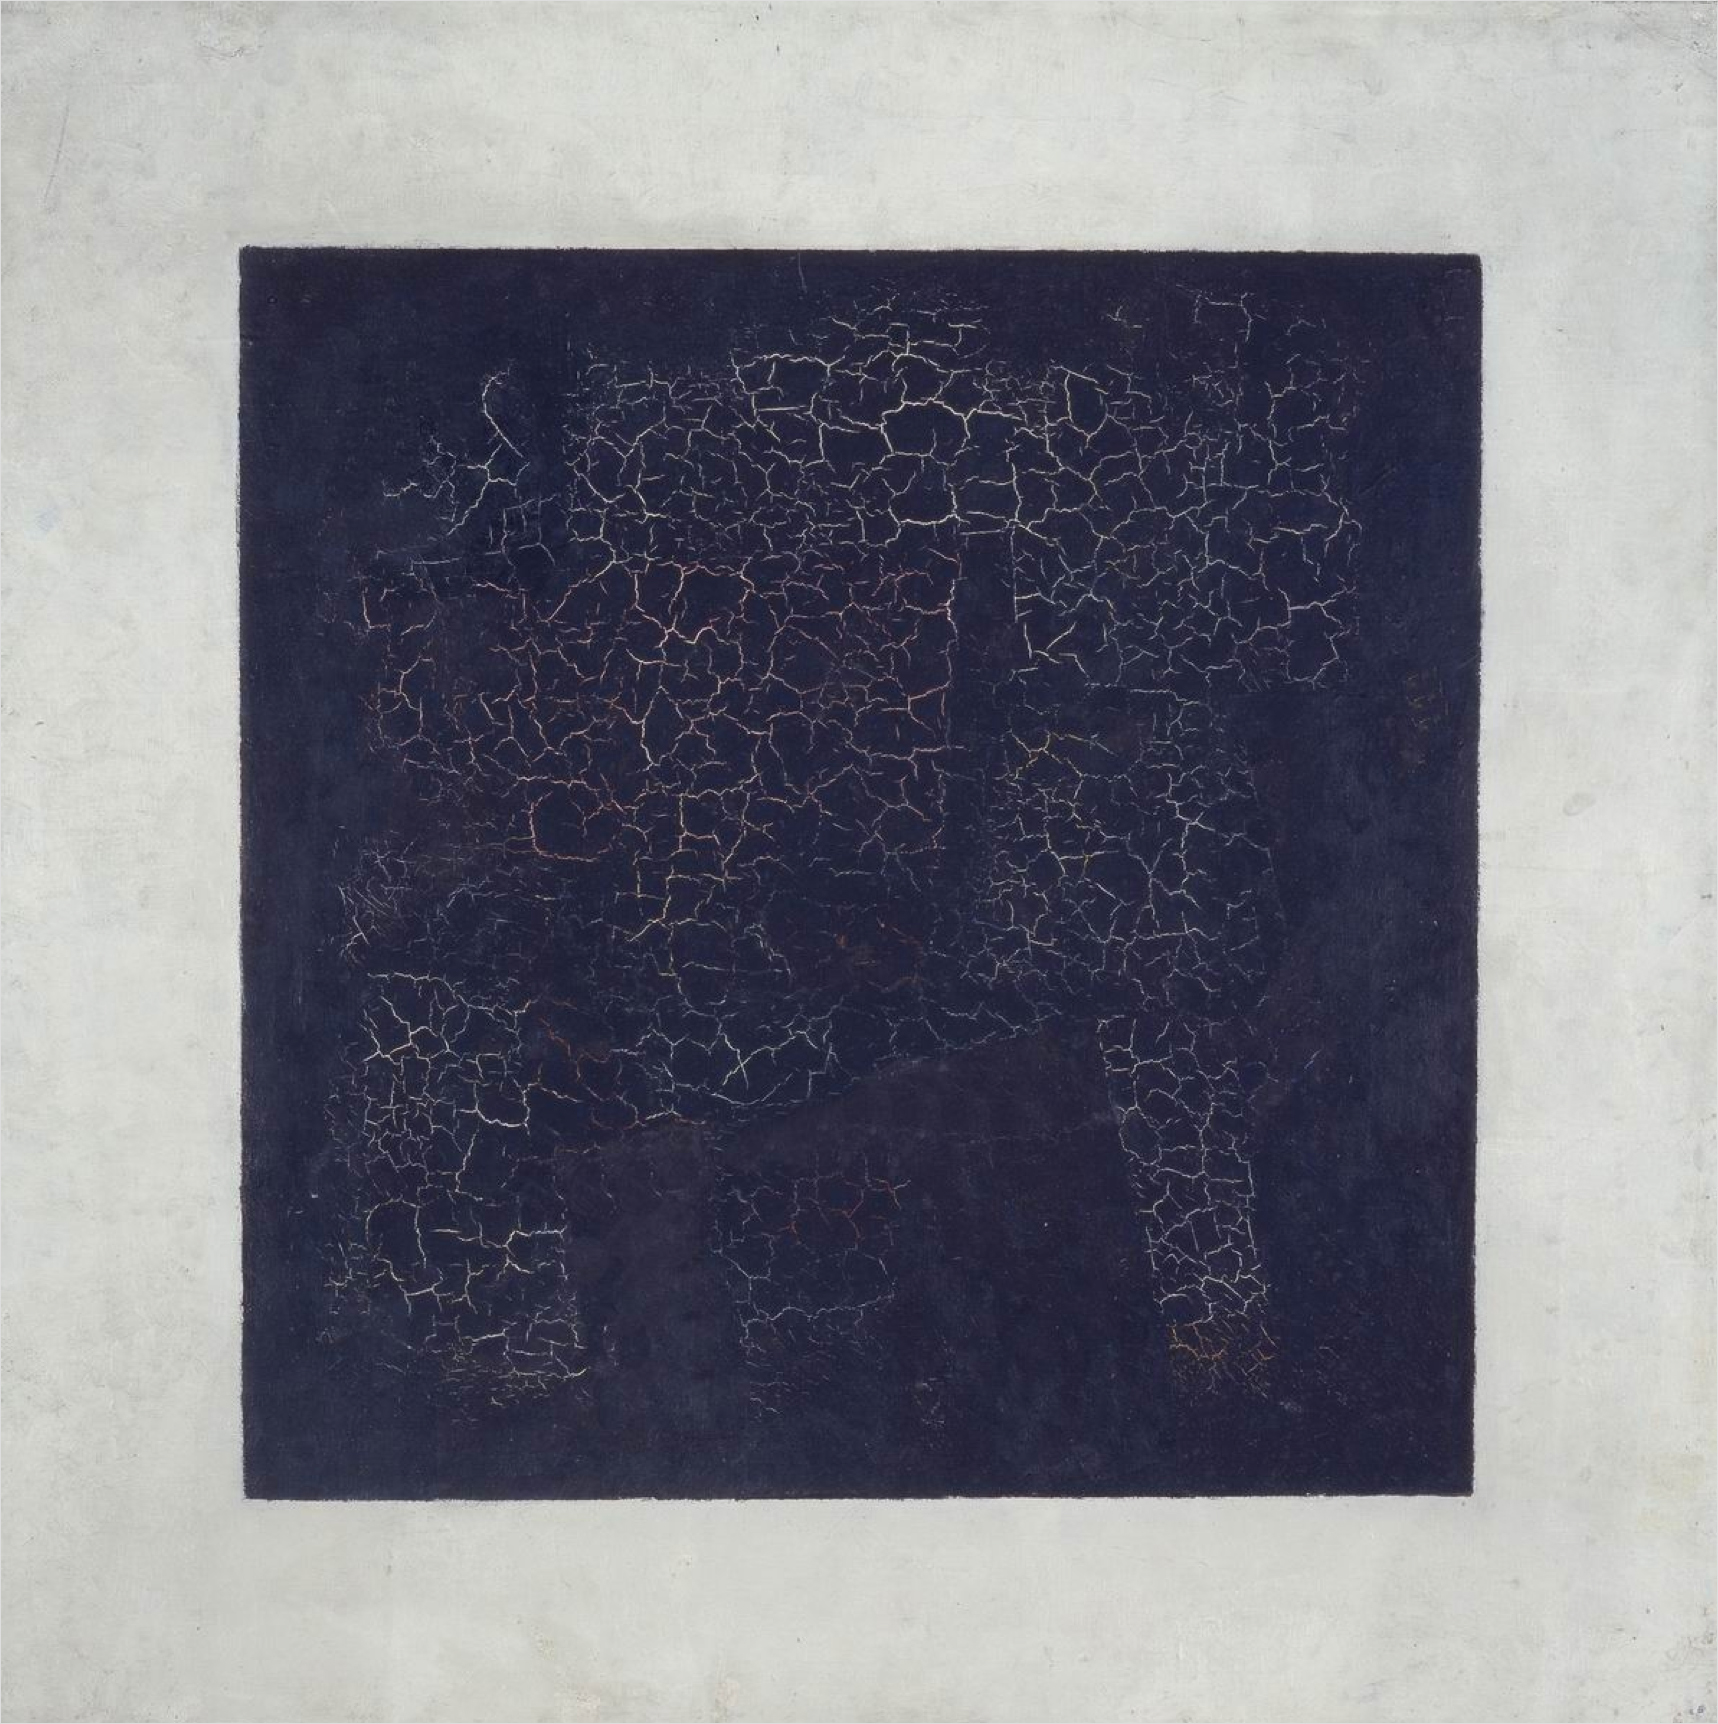 Kazimir_Malevich,_1915,_Black_Suprematic_Square,_oil_on_linen_canvas,_79.5_x_79.5_cm,_Tretyakov_Gallery,_Moscow.jpg (1718×1724)